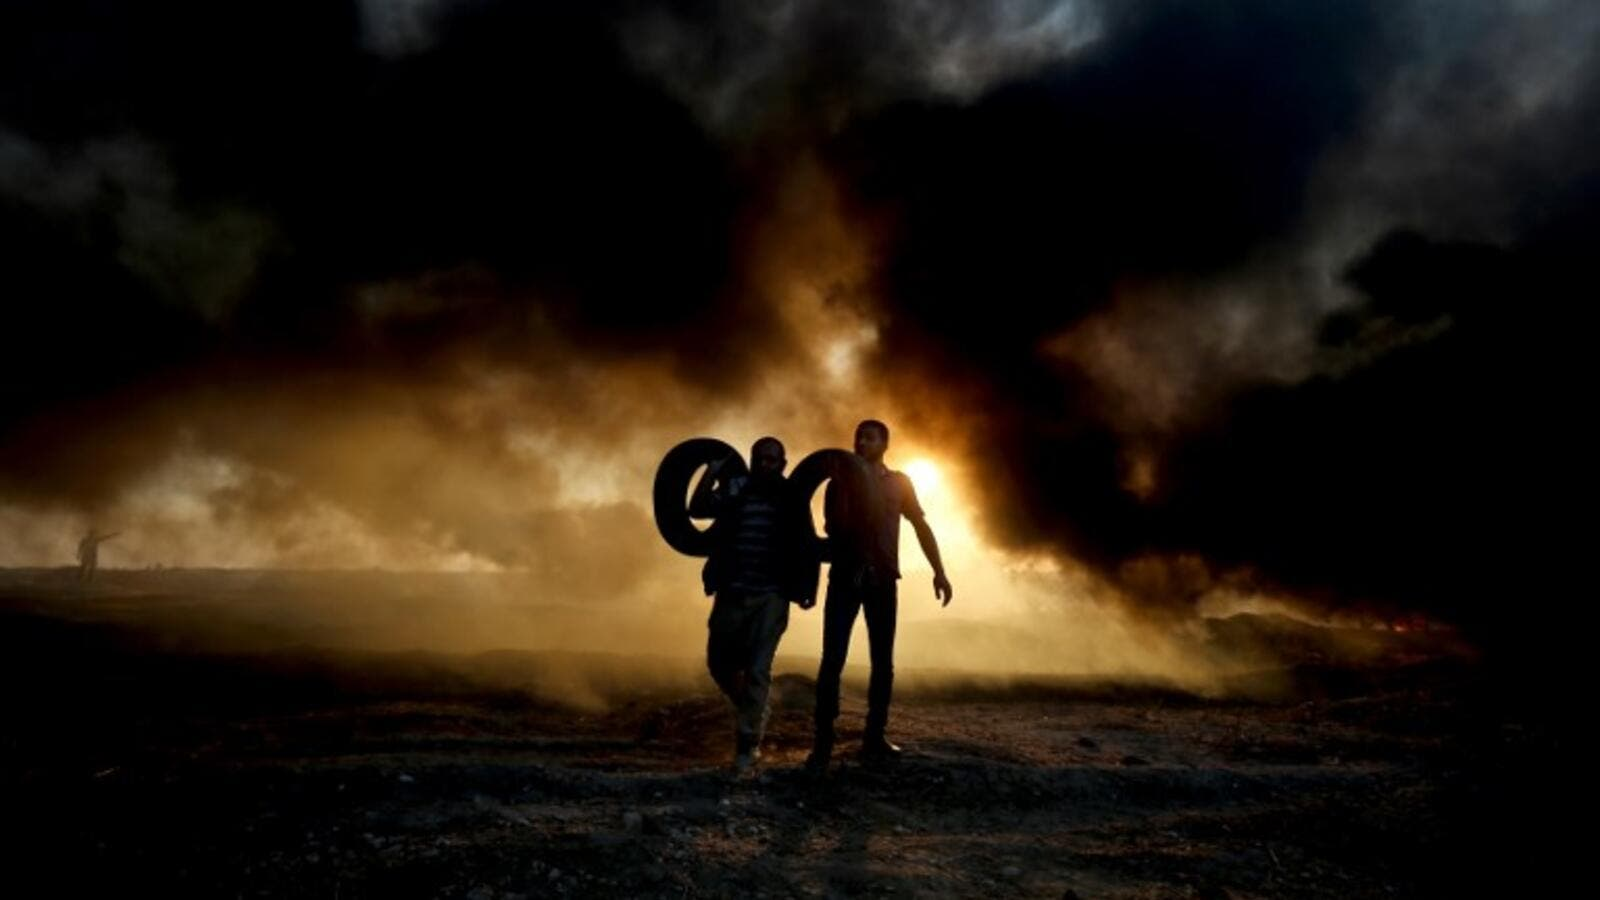 Palestinian protesters carry tyres as smoke billows from burning tyres at the Israel-Gaza border, east of Gaza city. (SAID KHATIB / AFP)